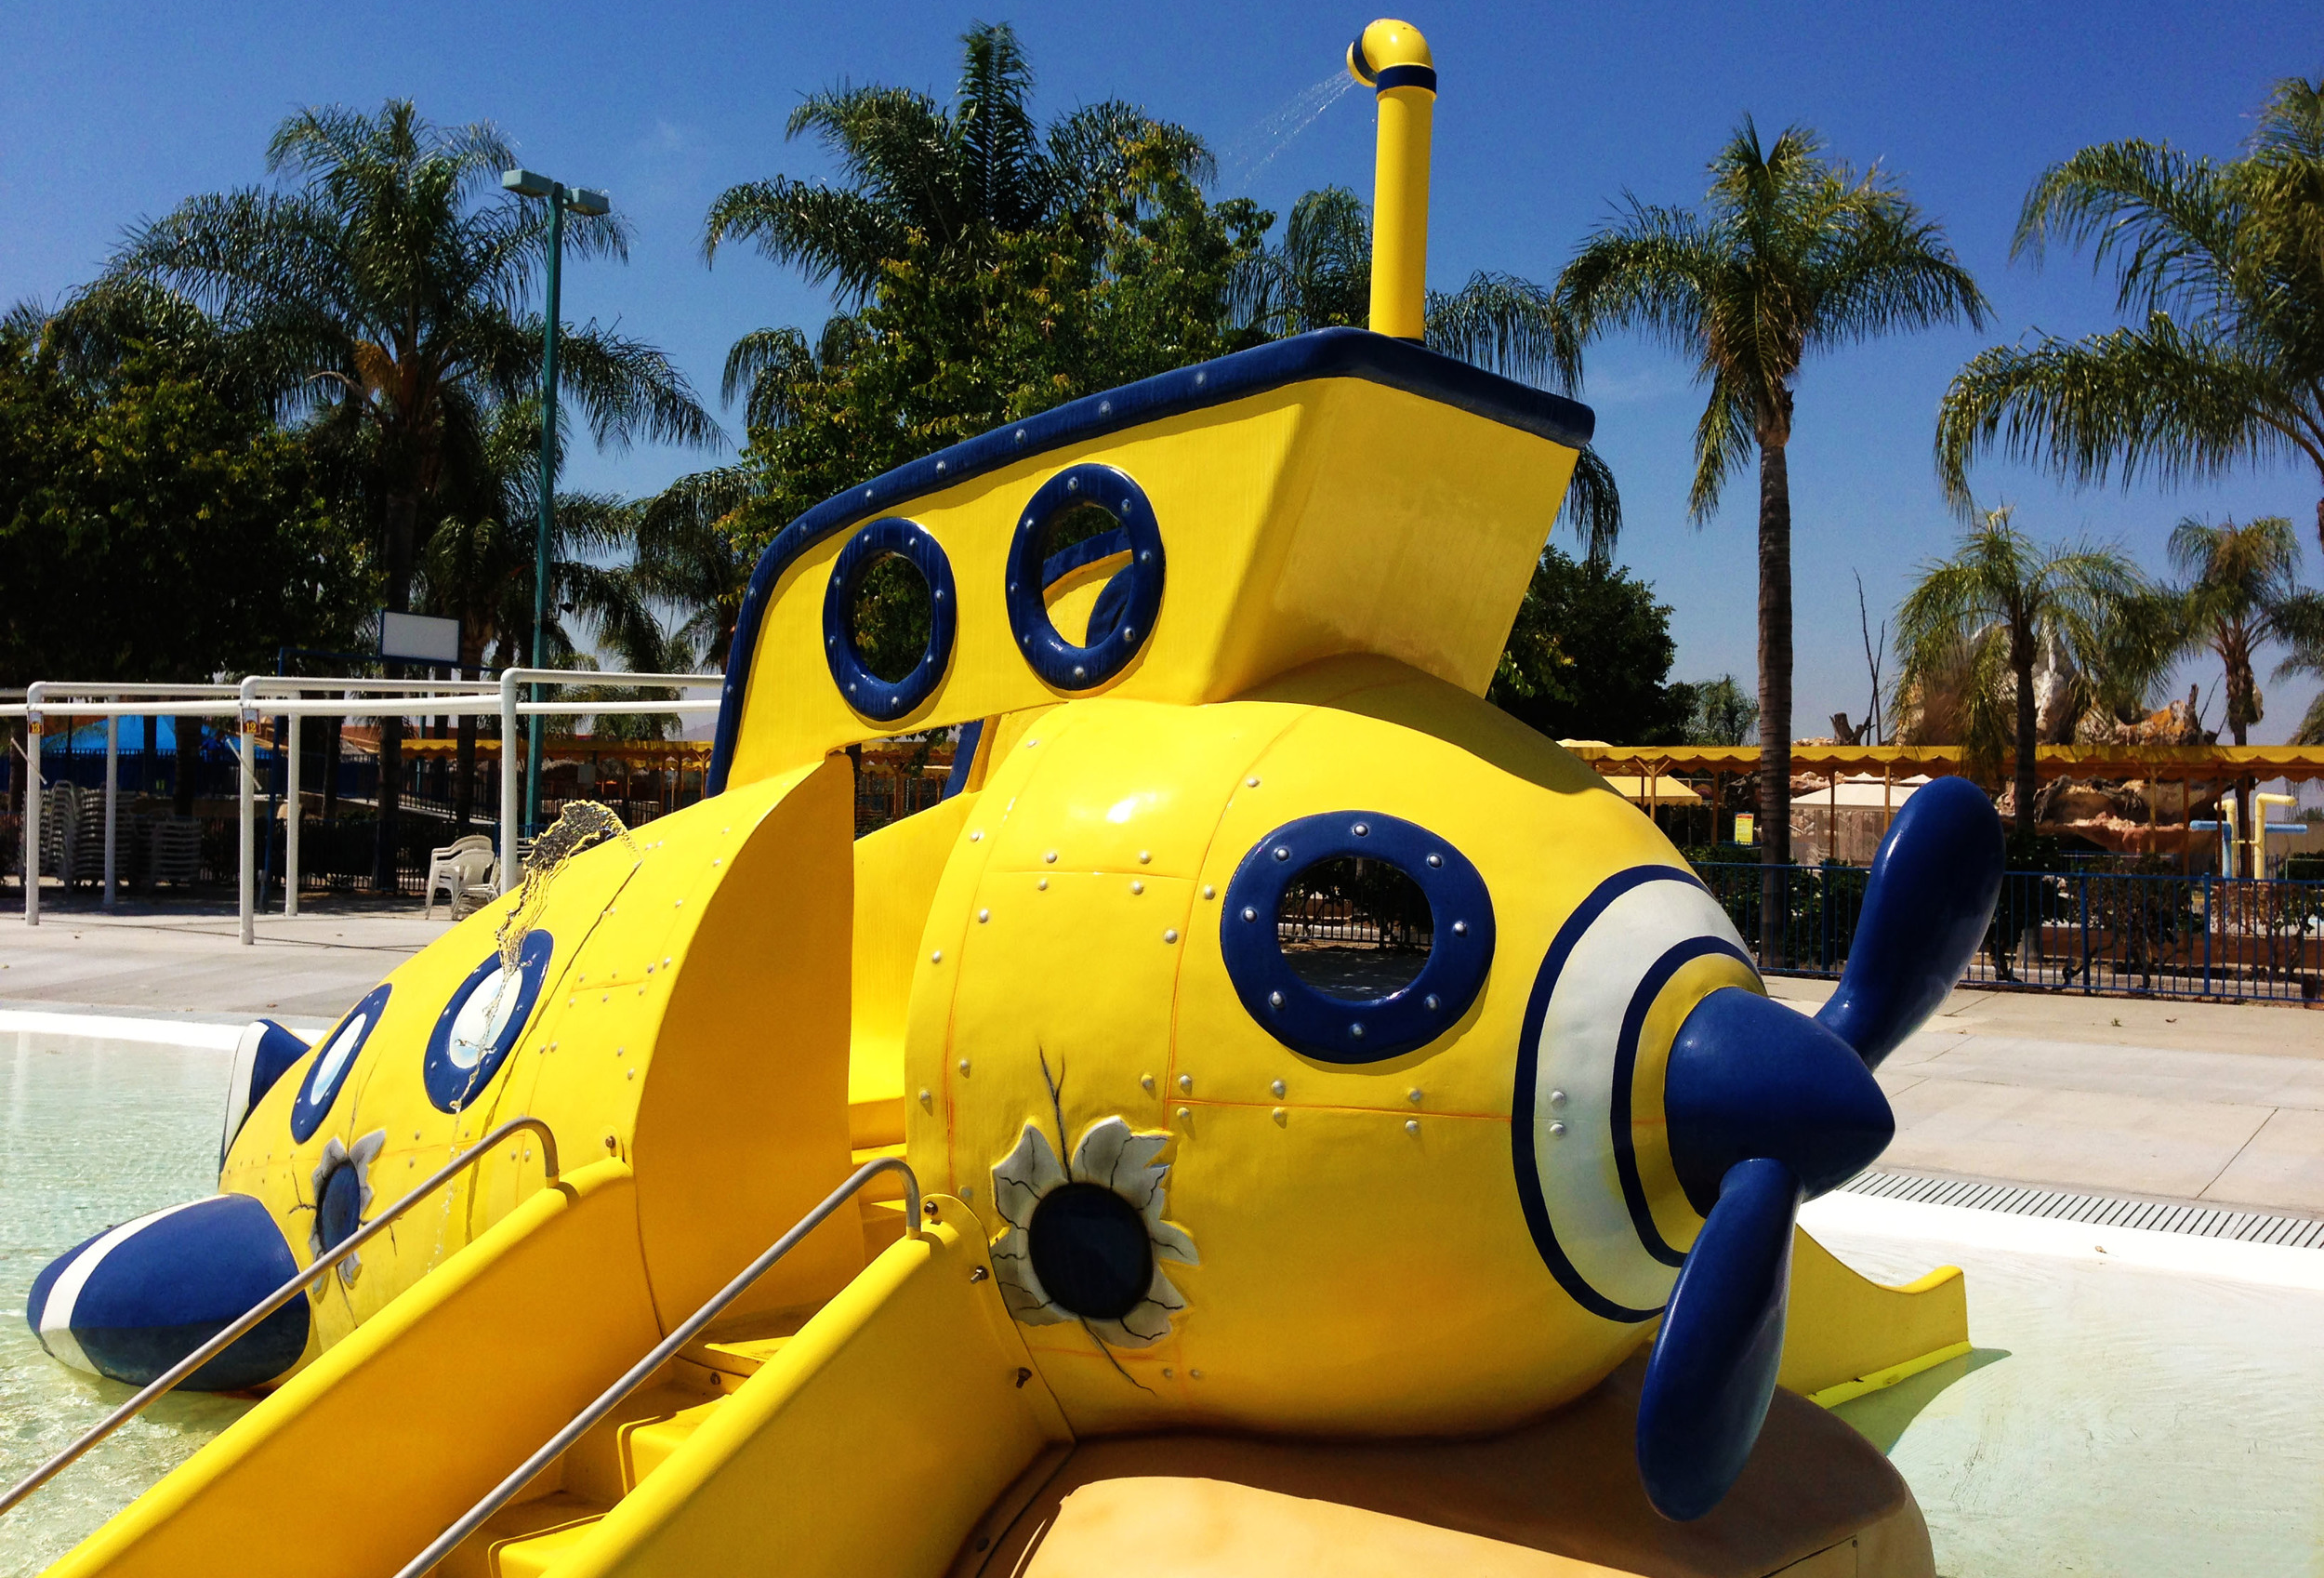 Toddlers absolutely love The Yellow Submarine -- and it's conveniently located in Castaway Cove so parents win, too!